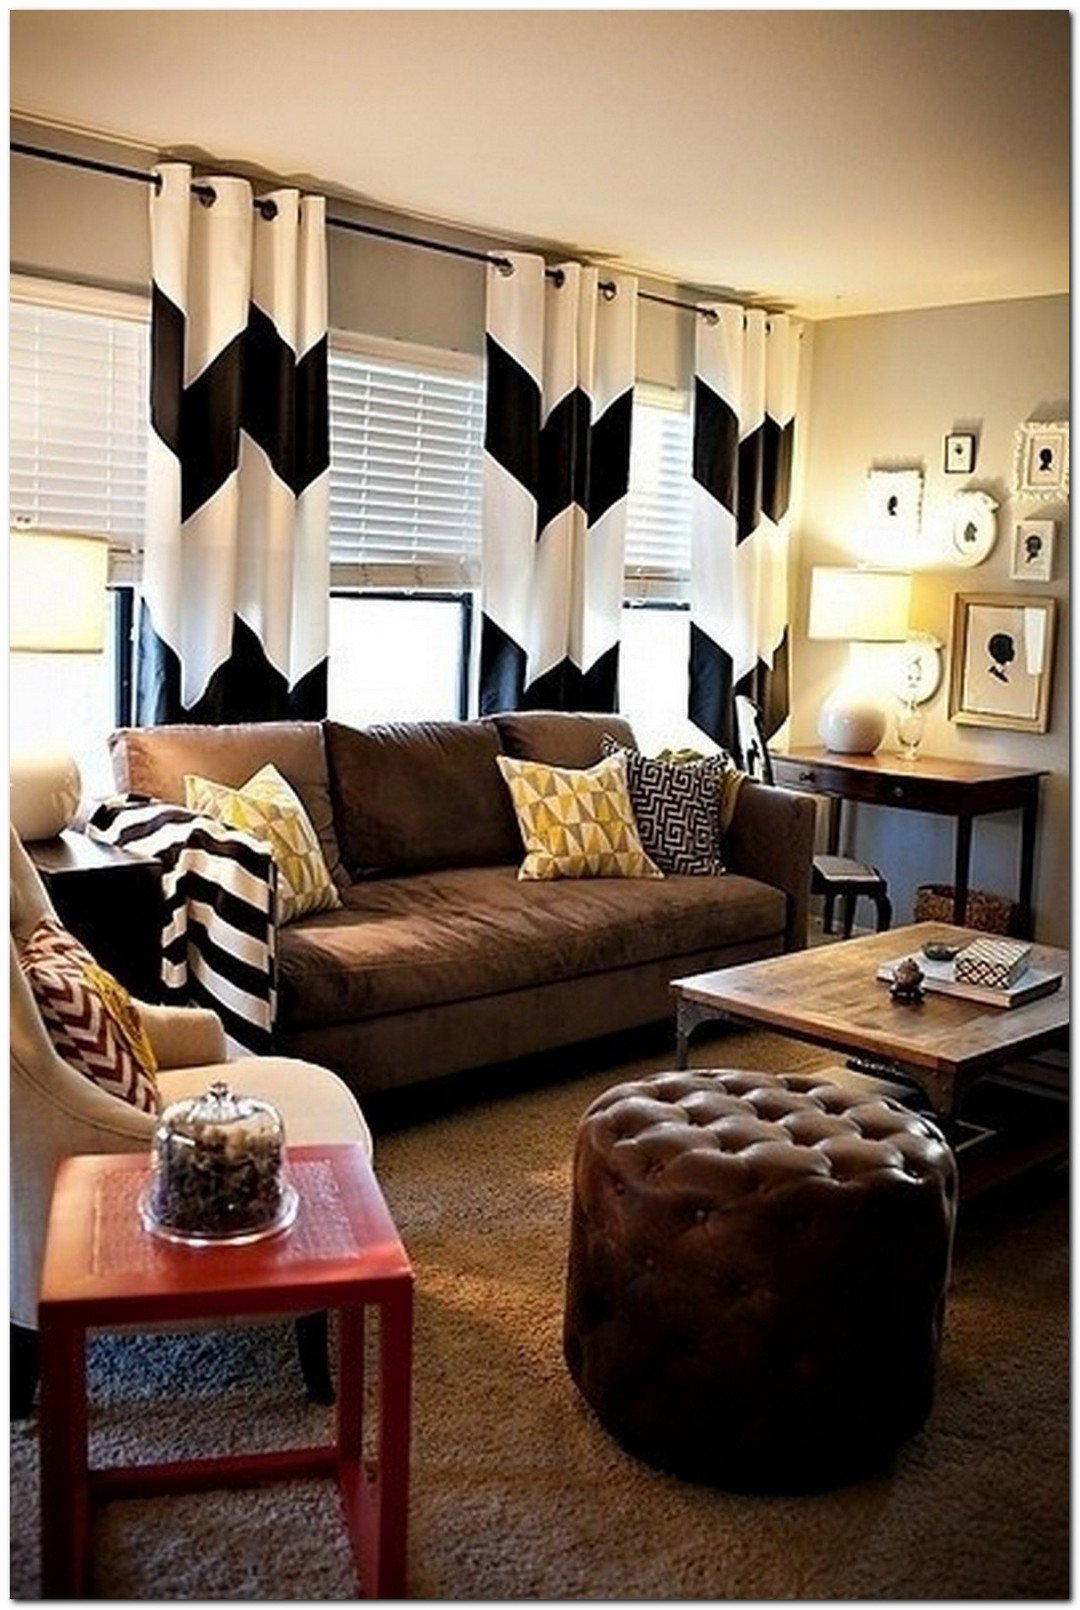 Apartment Decor On A Budget Elegant Cozy Small Apartment Decorating Ideas A Bud 4 De Agz